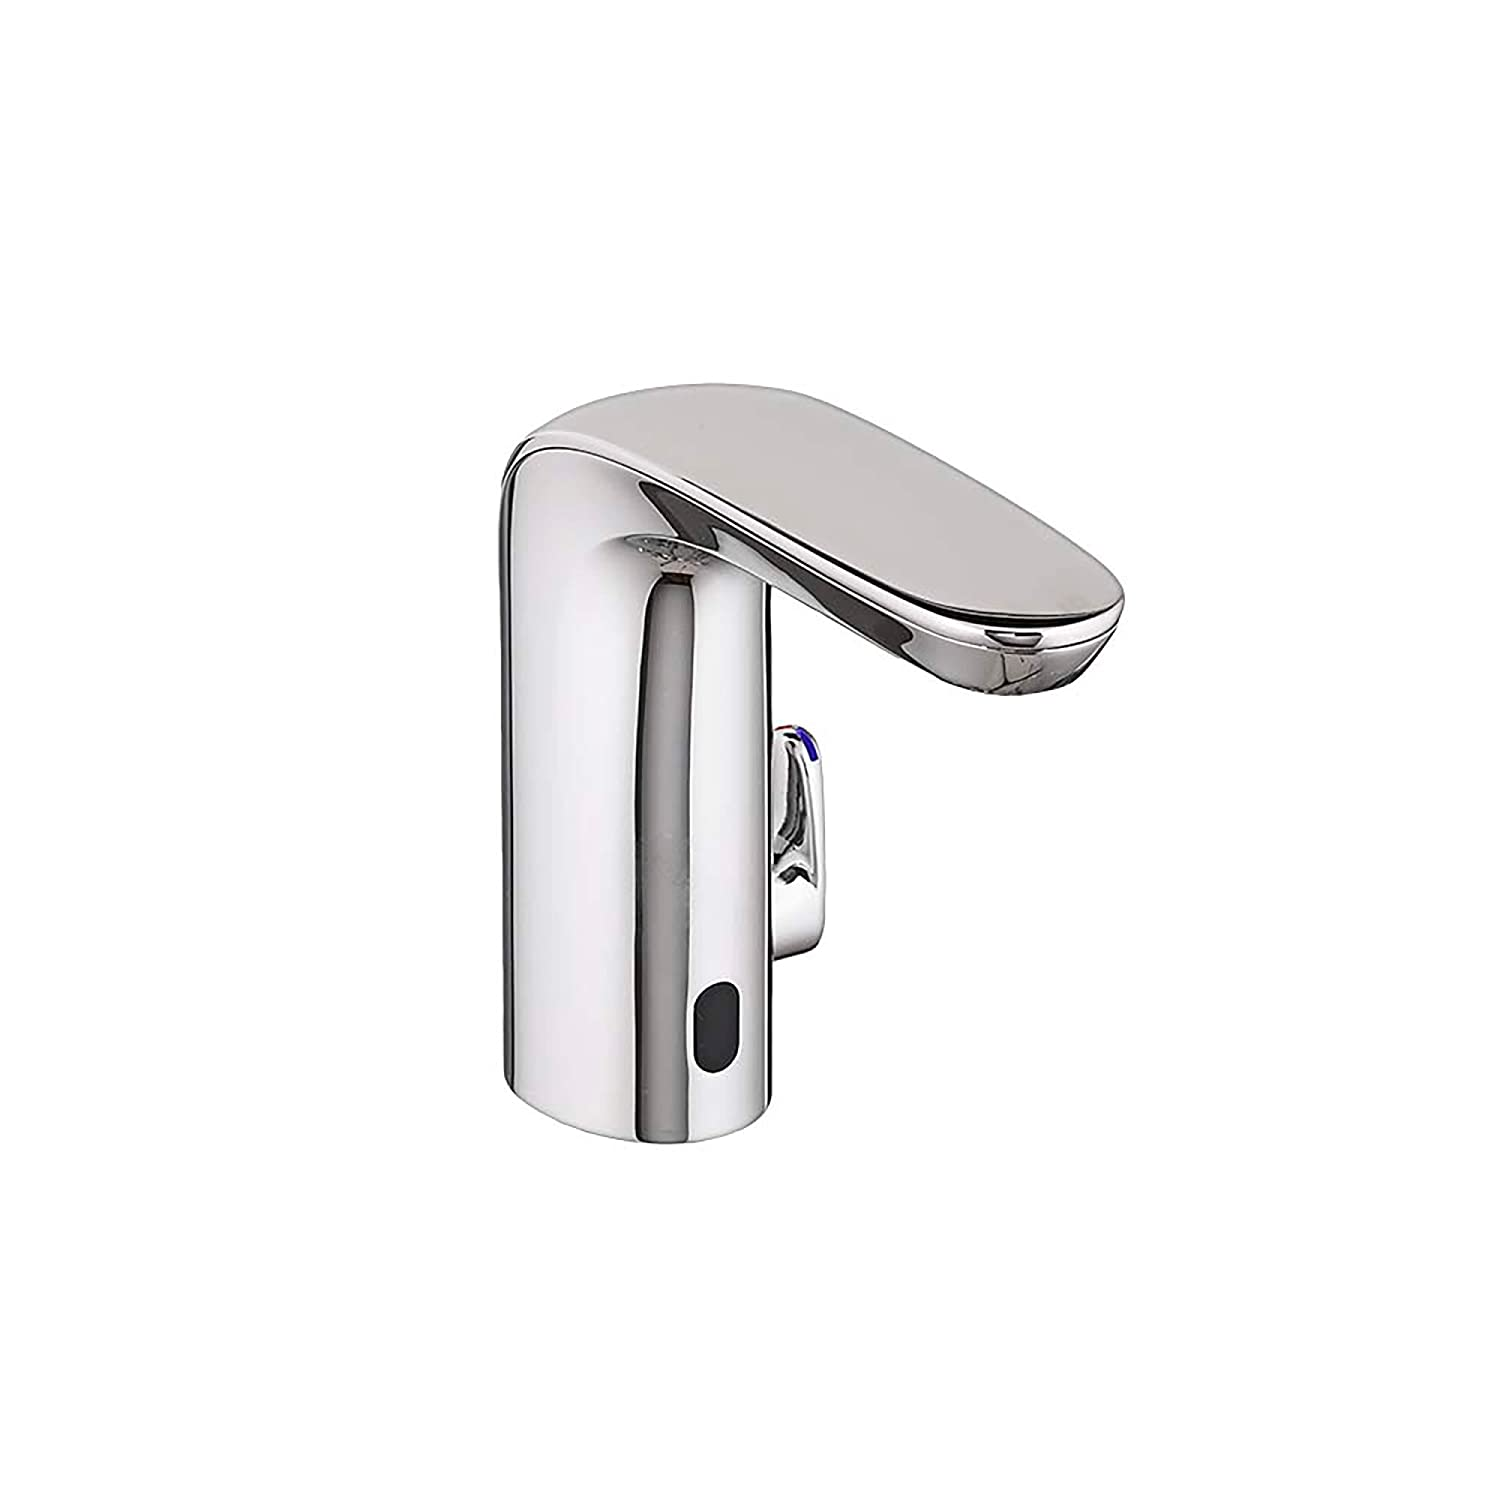 durable service American Standard 7755203.002 .5 GPM NextGen Selectronic Integrated Faucet Base Model ADM LimiTemp Safety Shut-Off, Polished Chrome